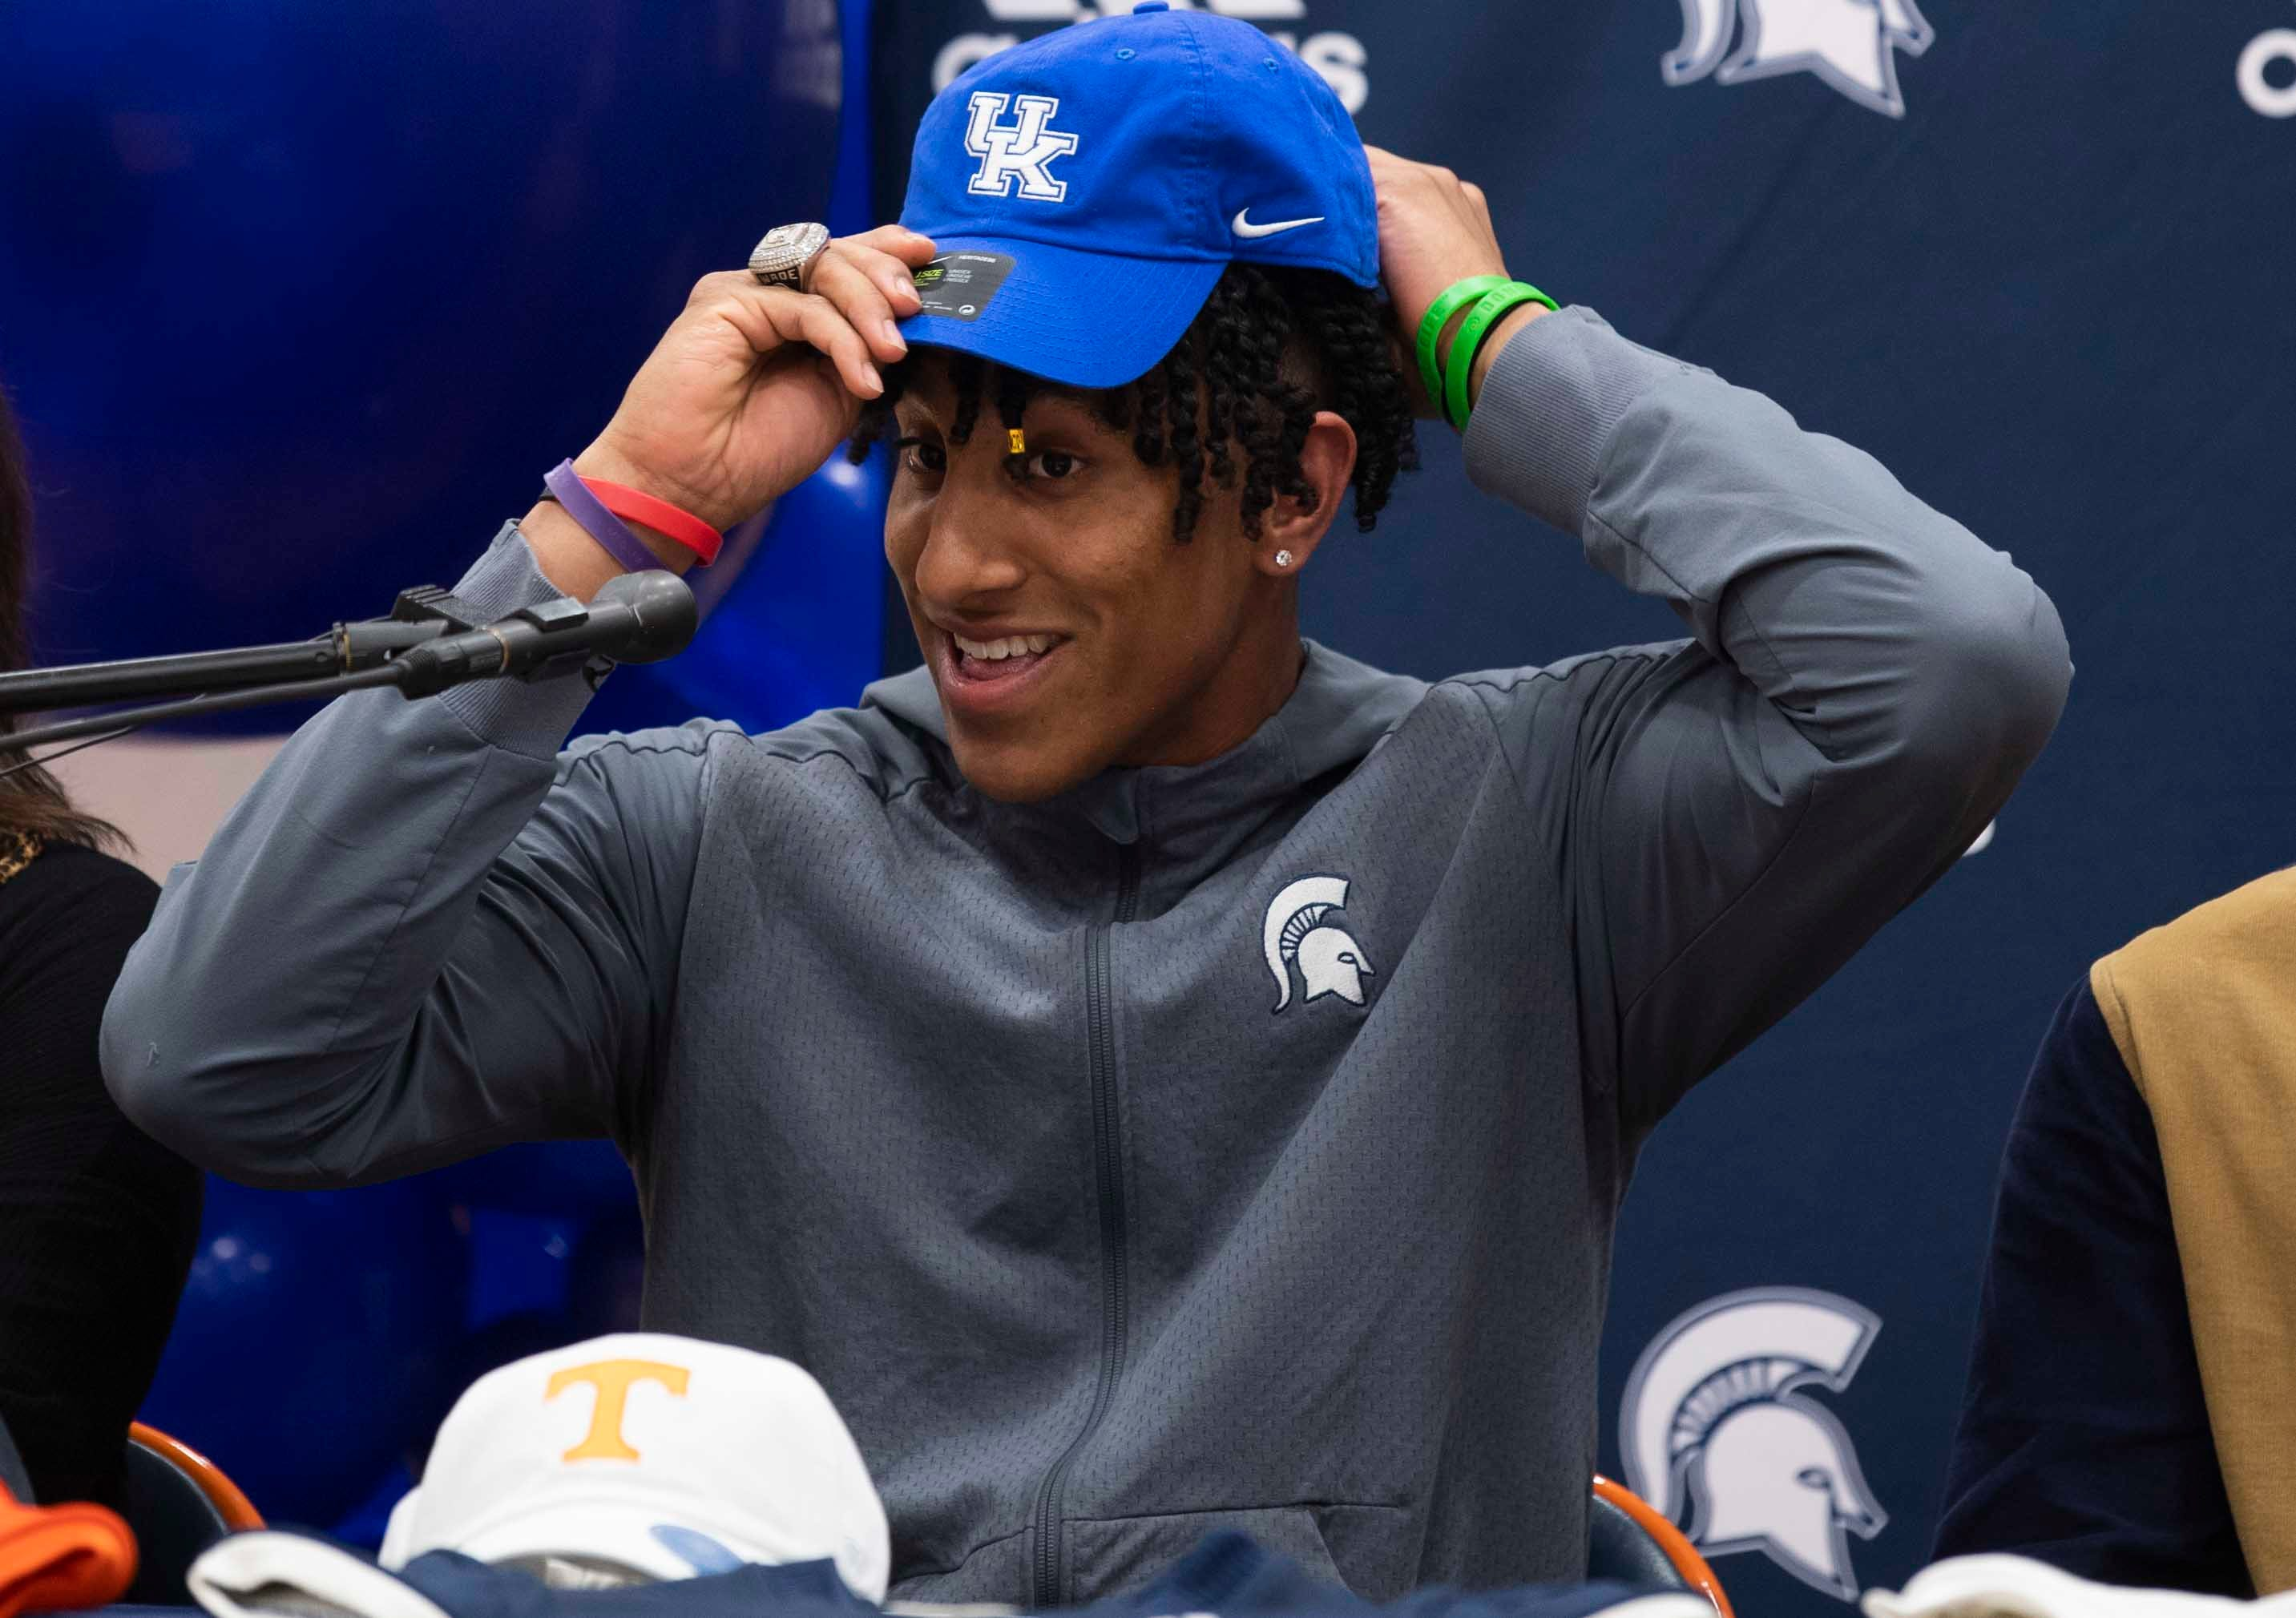 Football recruiting: Destin and Keaten Wade talk about committing to Kentucky over Vols